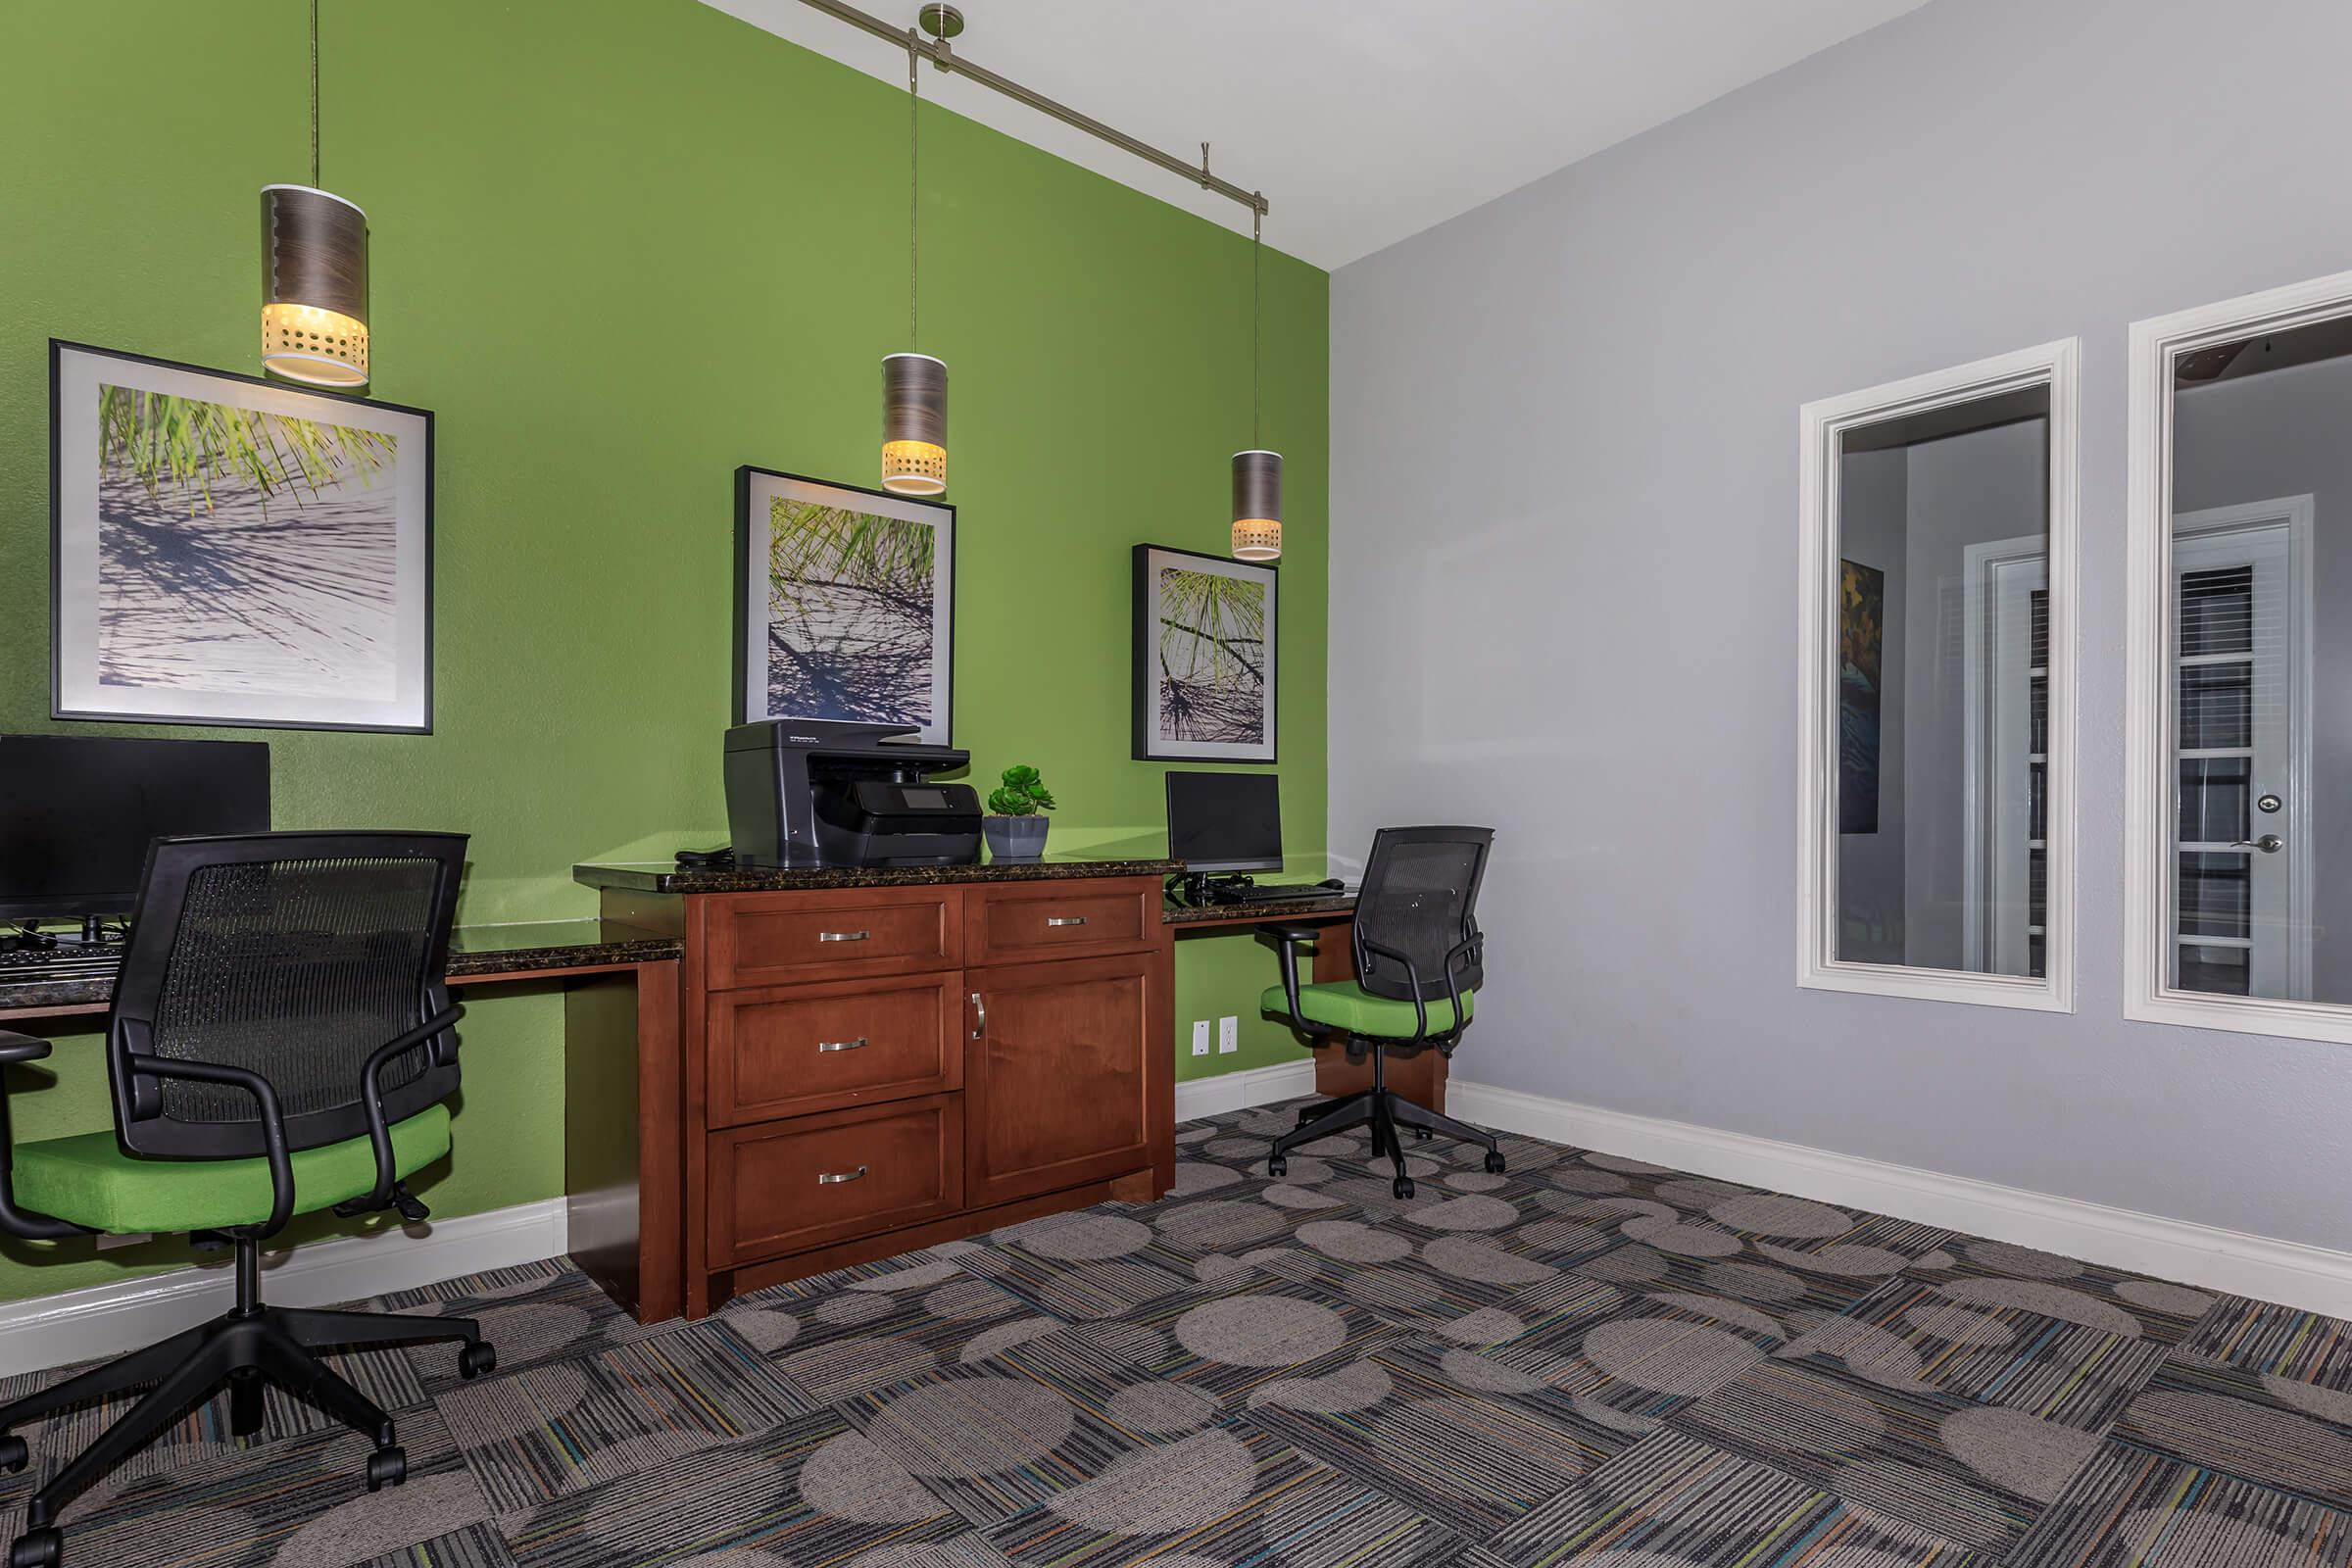 a bedroom with a green painted room